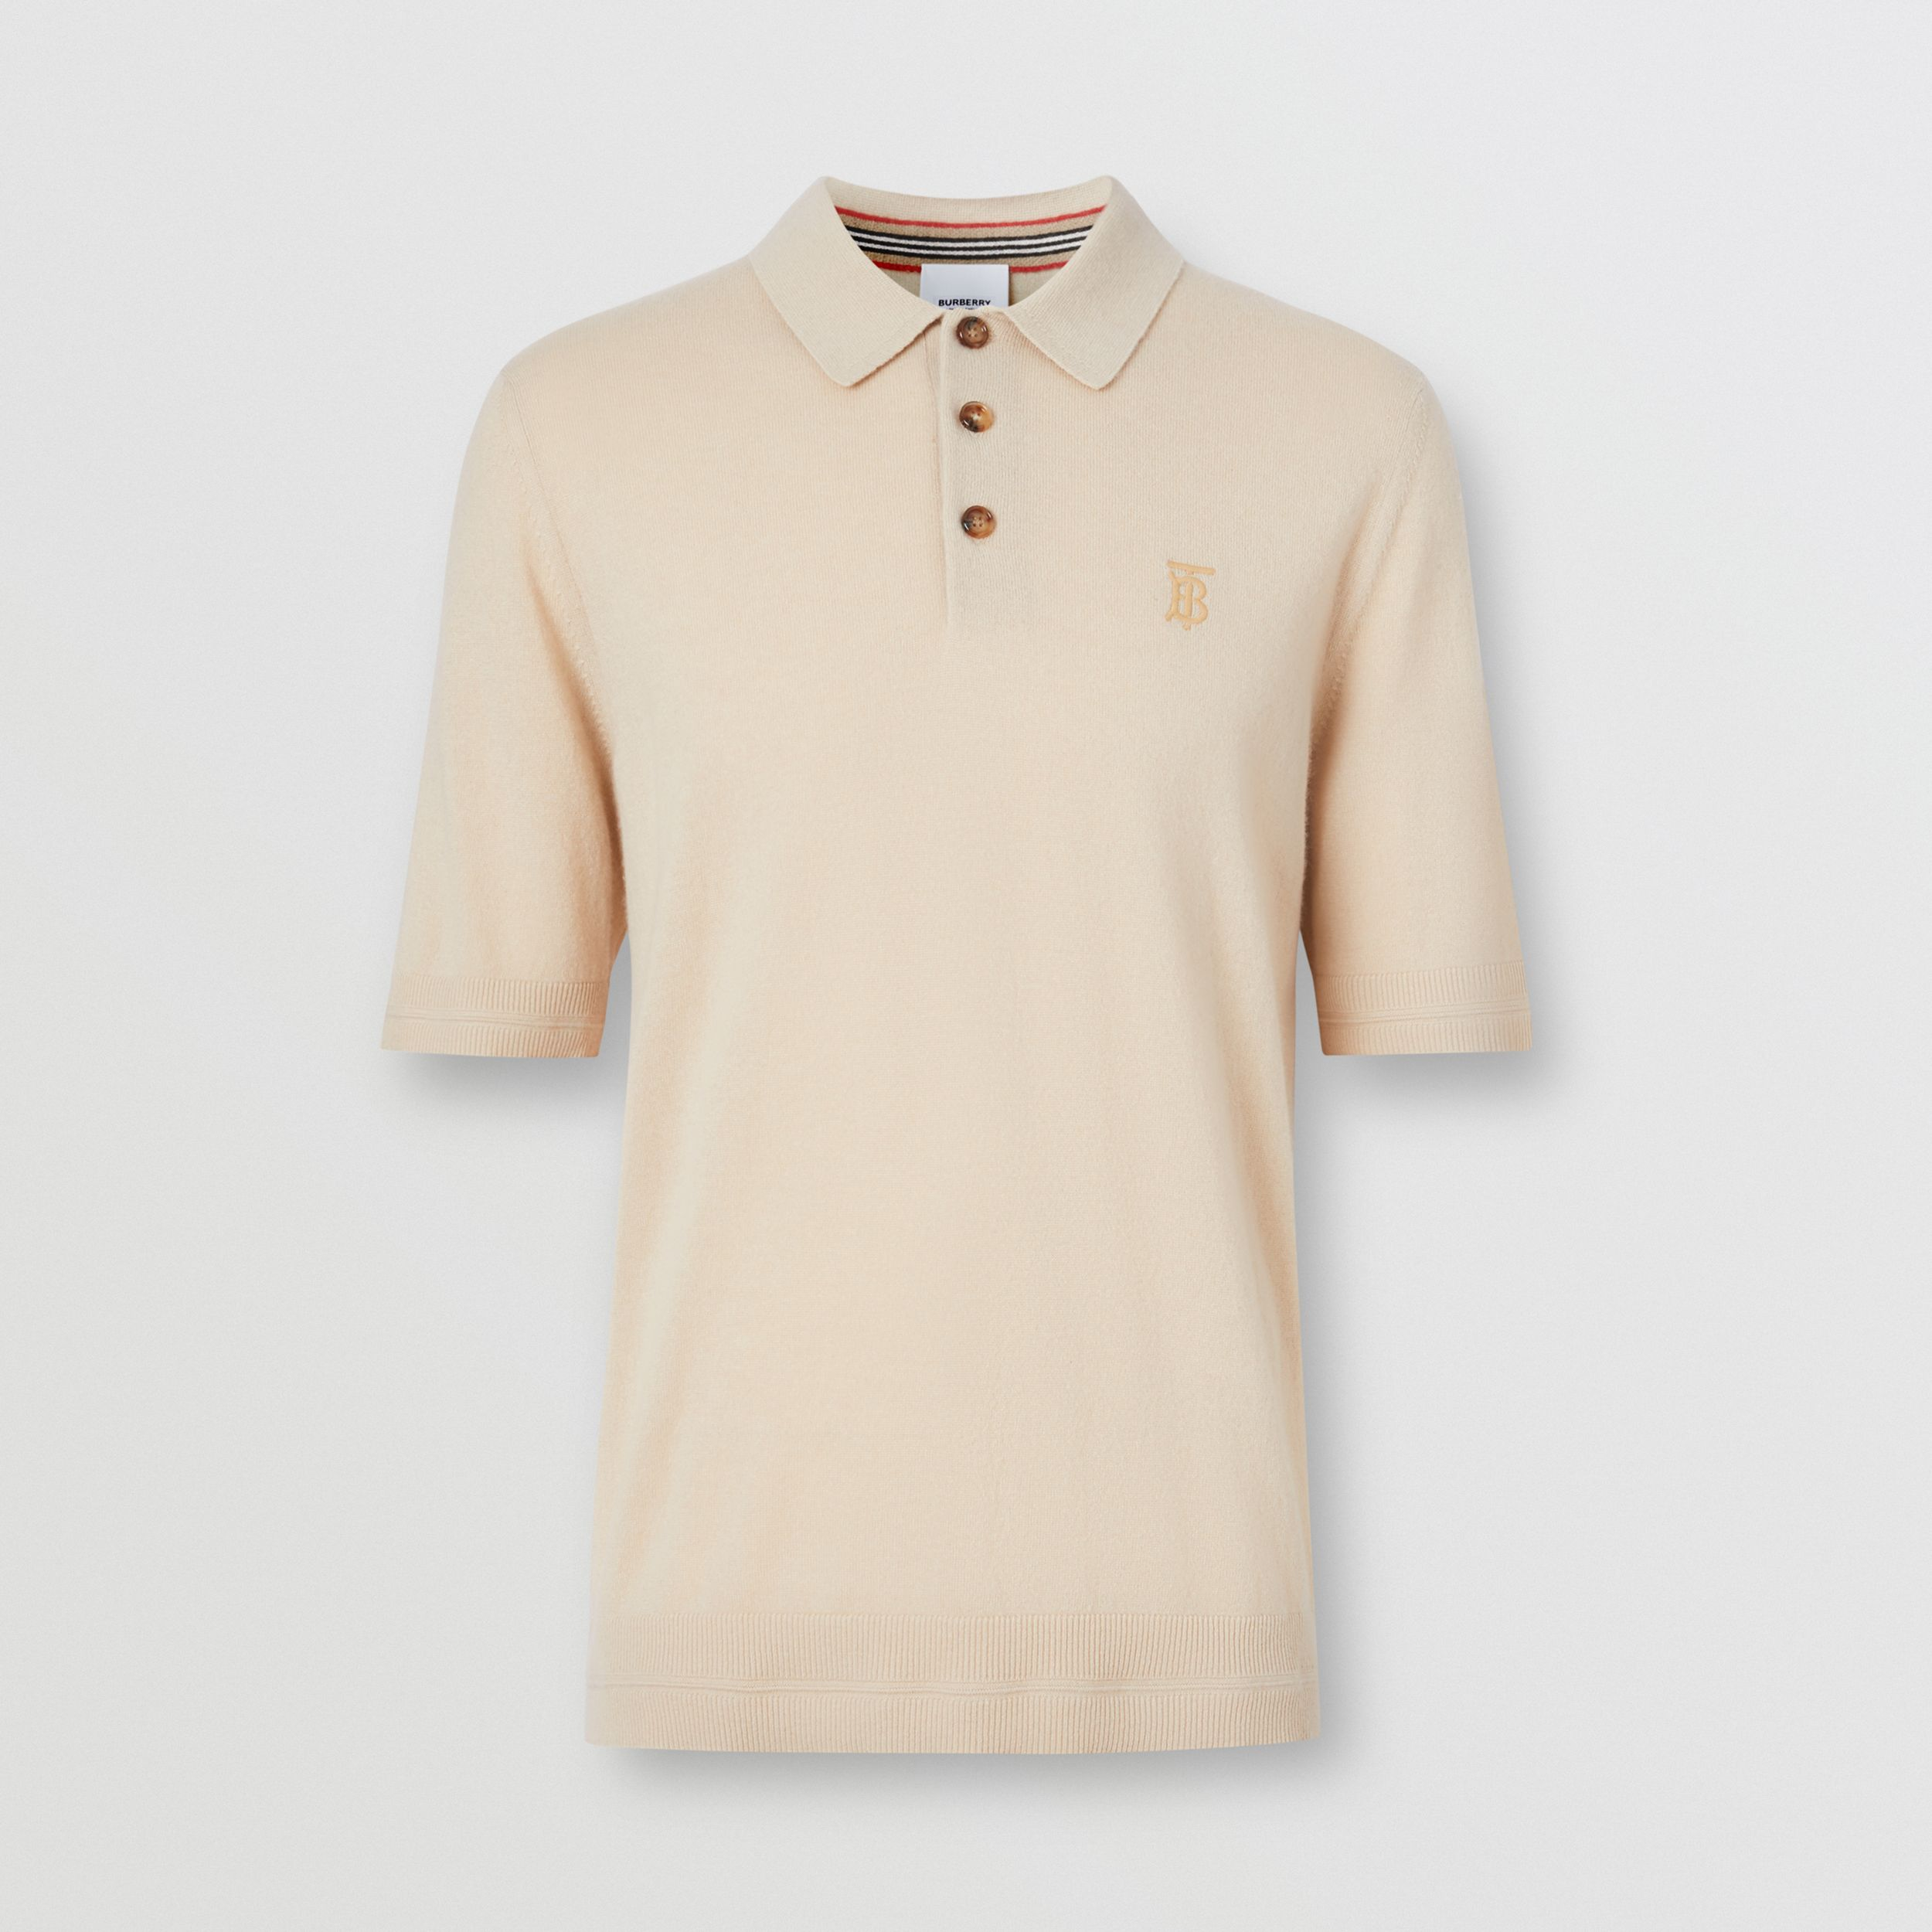 Monogram Motif Cashmere Polo Shirt in Soft Fawn | Burberry - 4